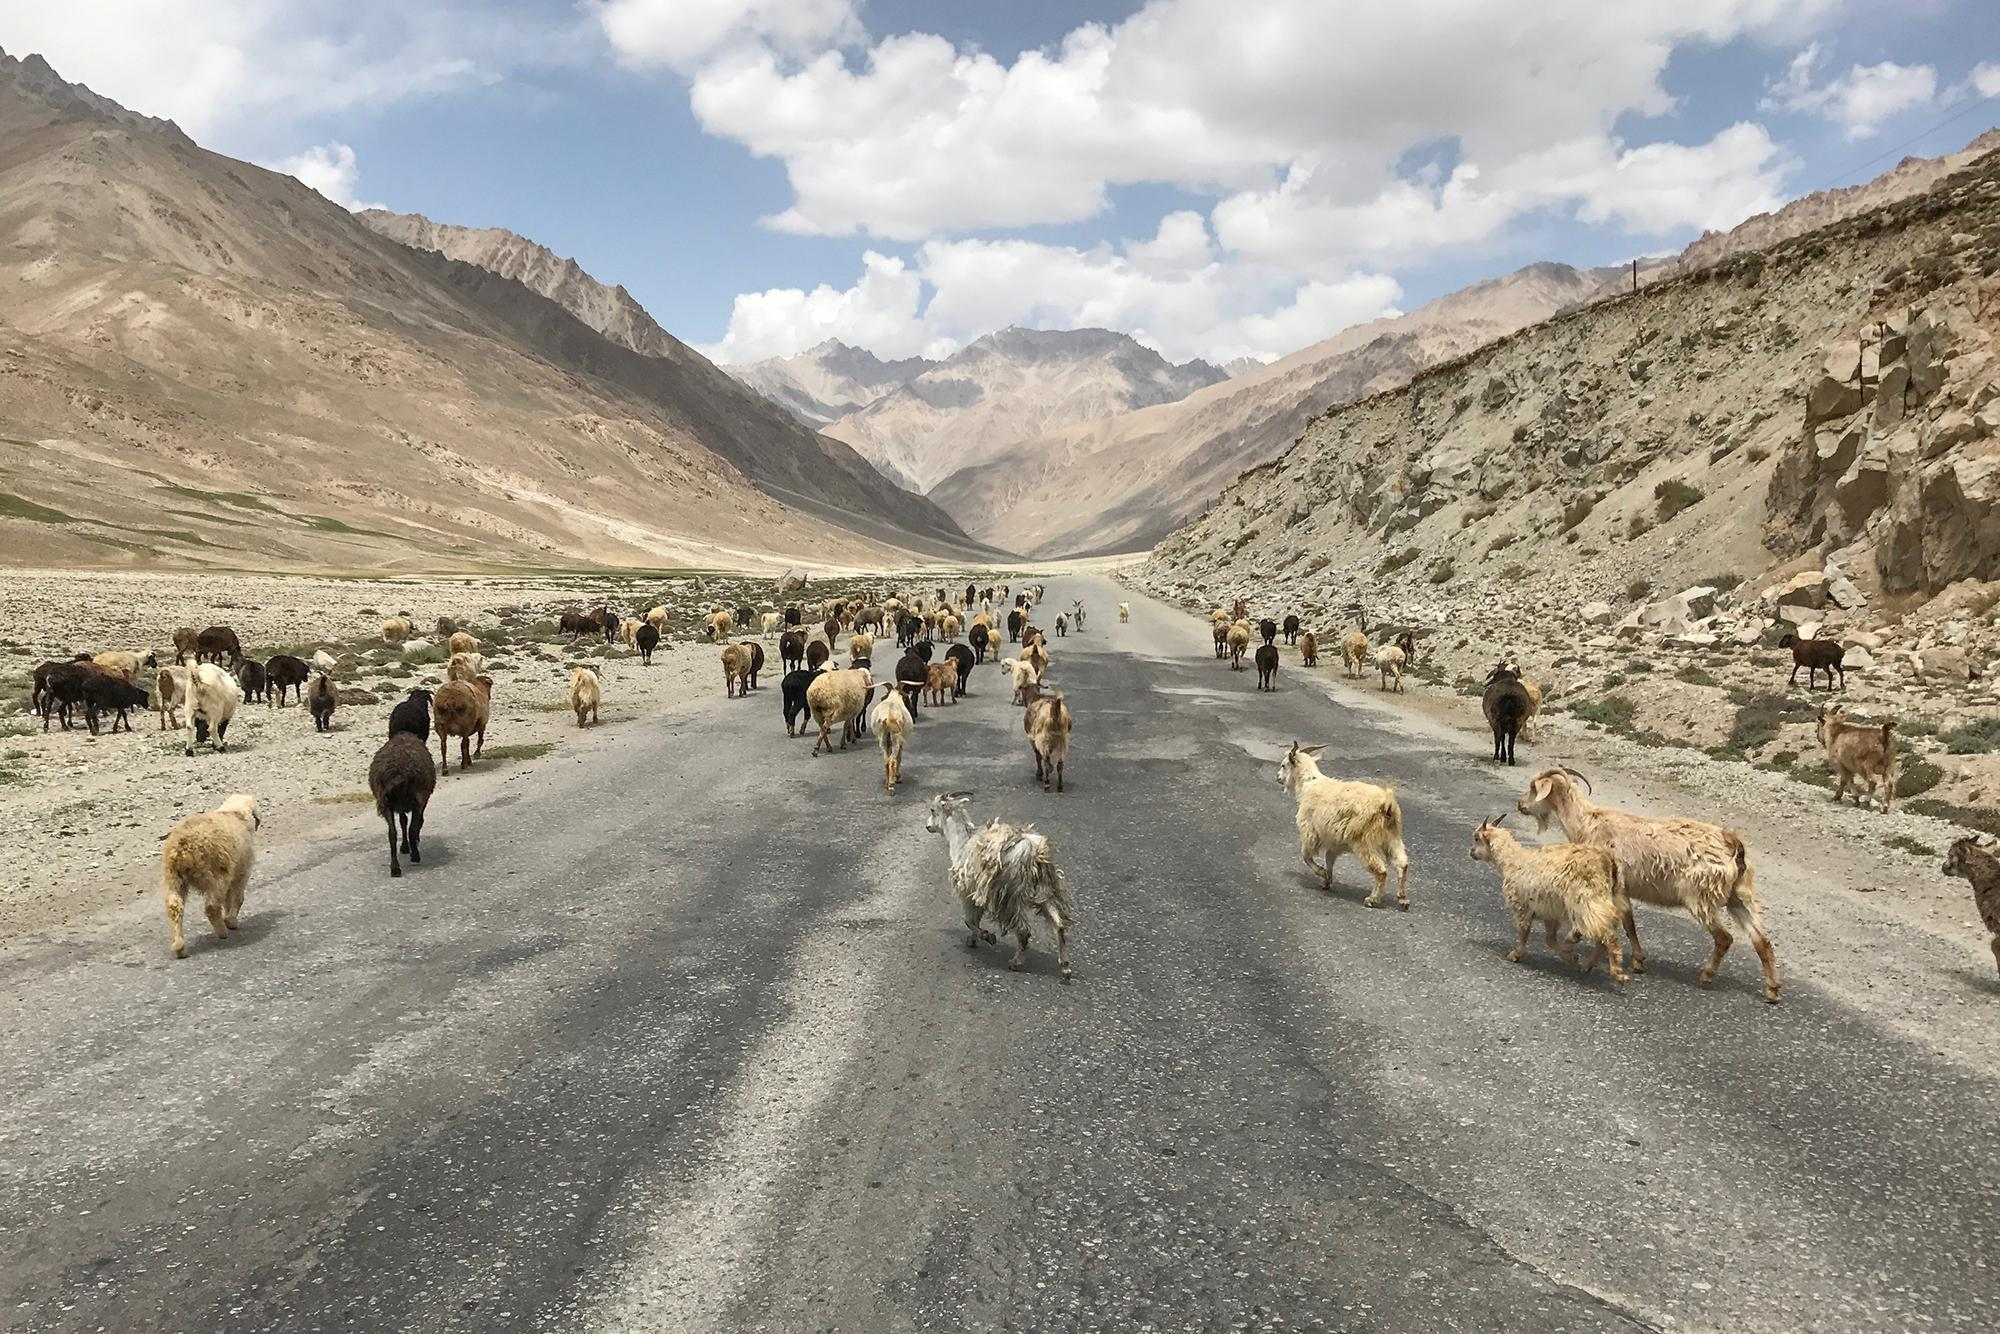 We saw more goats than cars on the Pamir Highway.